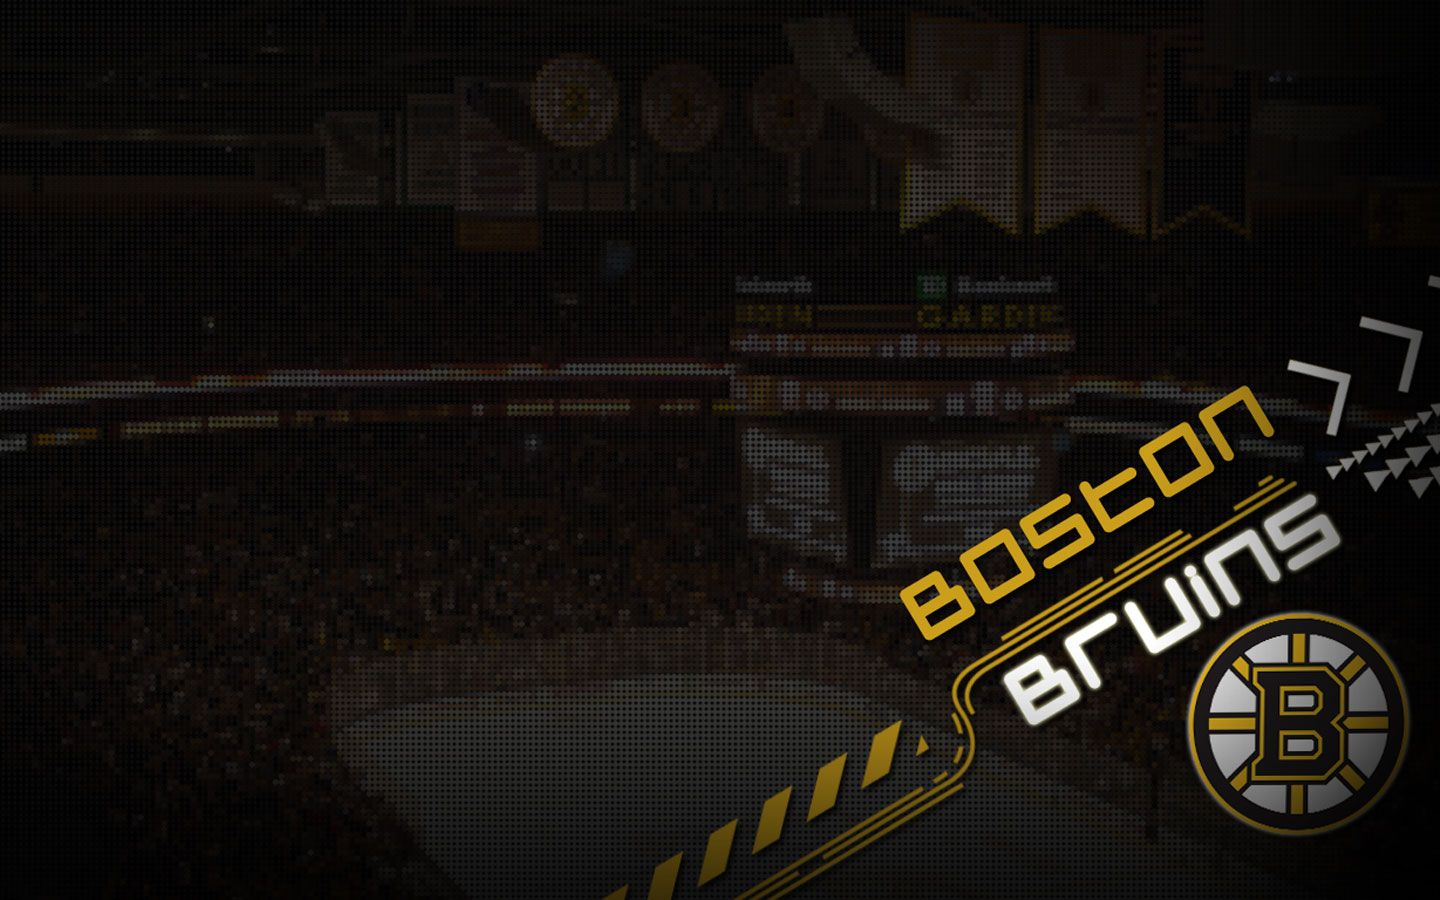 Boston Bruins Wallpaper Best Cool Wallpaper HD Download 1440900